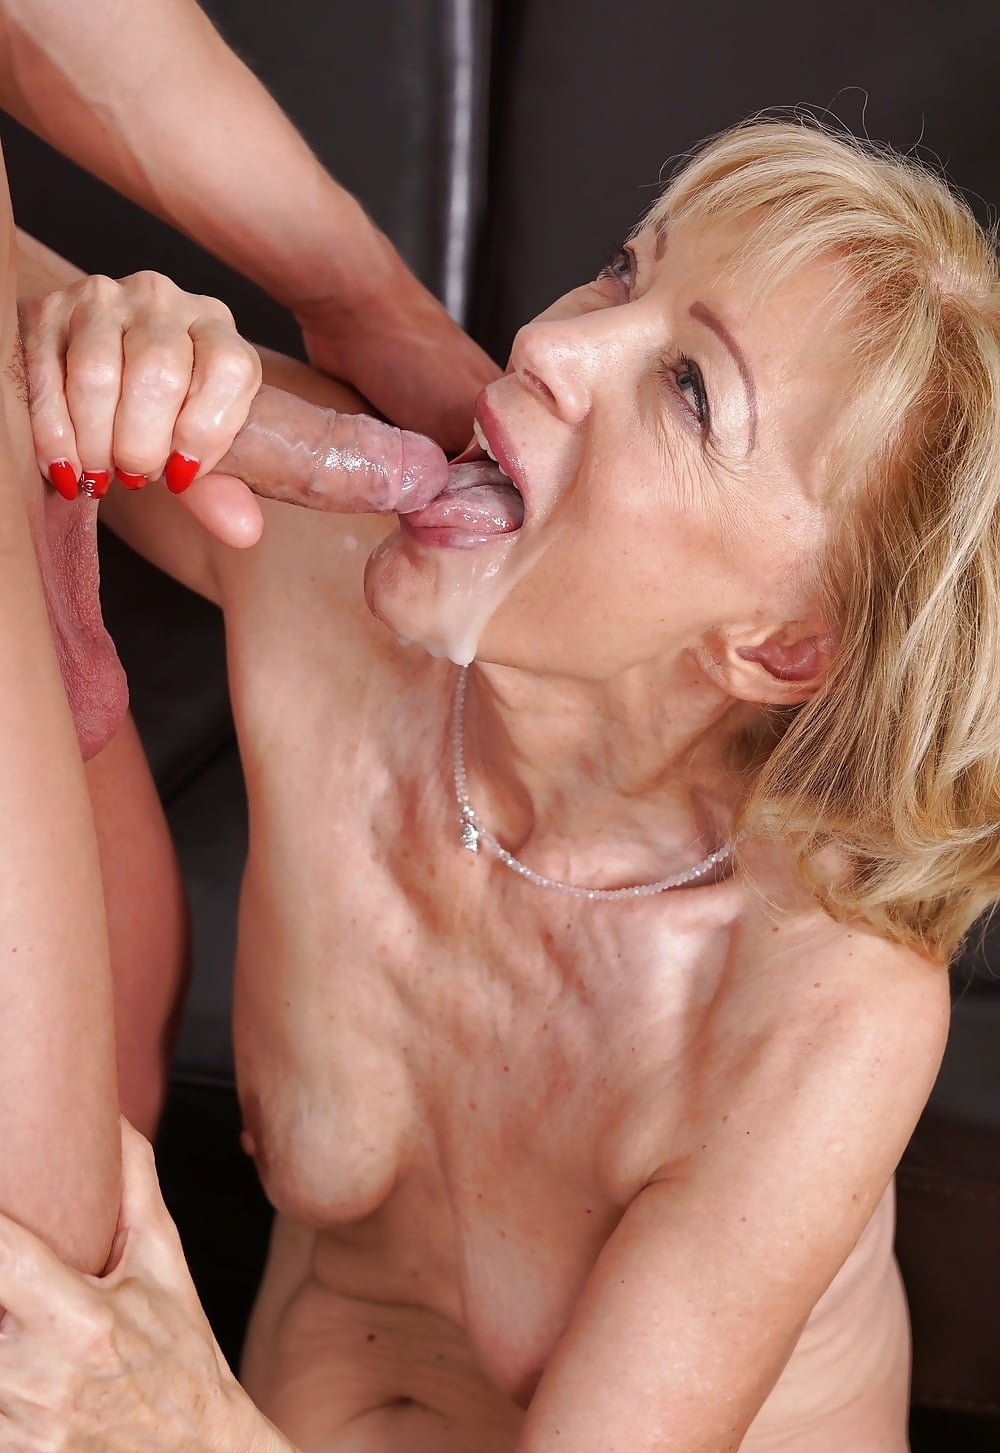 Mature women suck dicks for facial cumshots